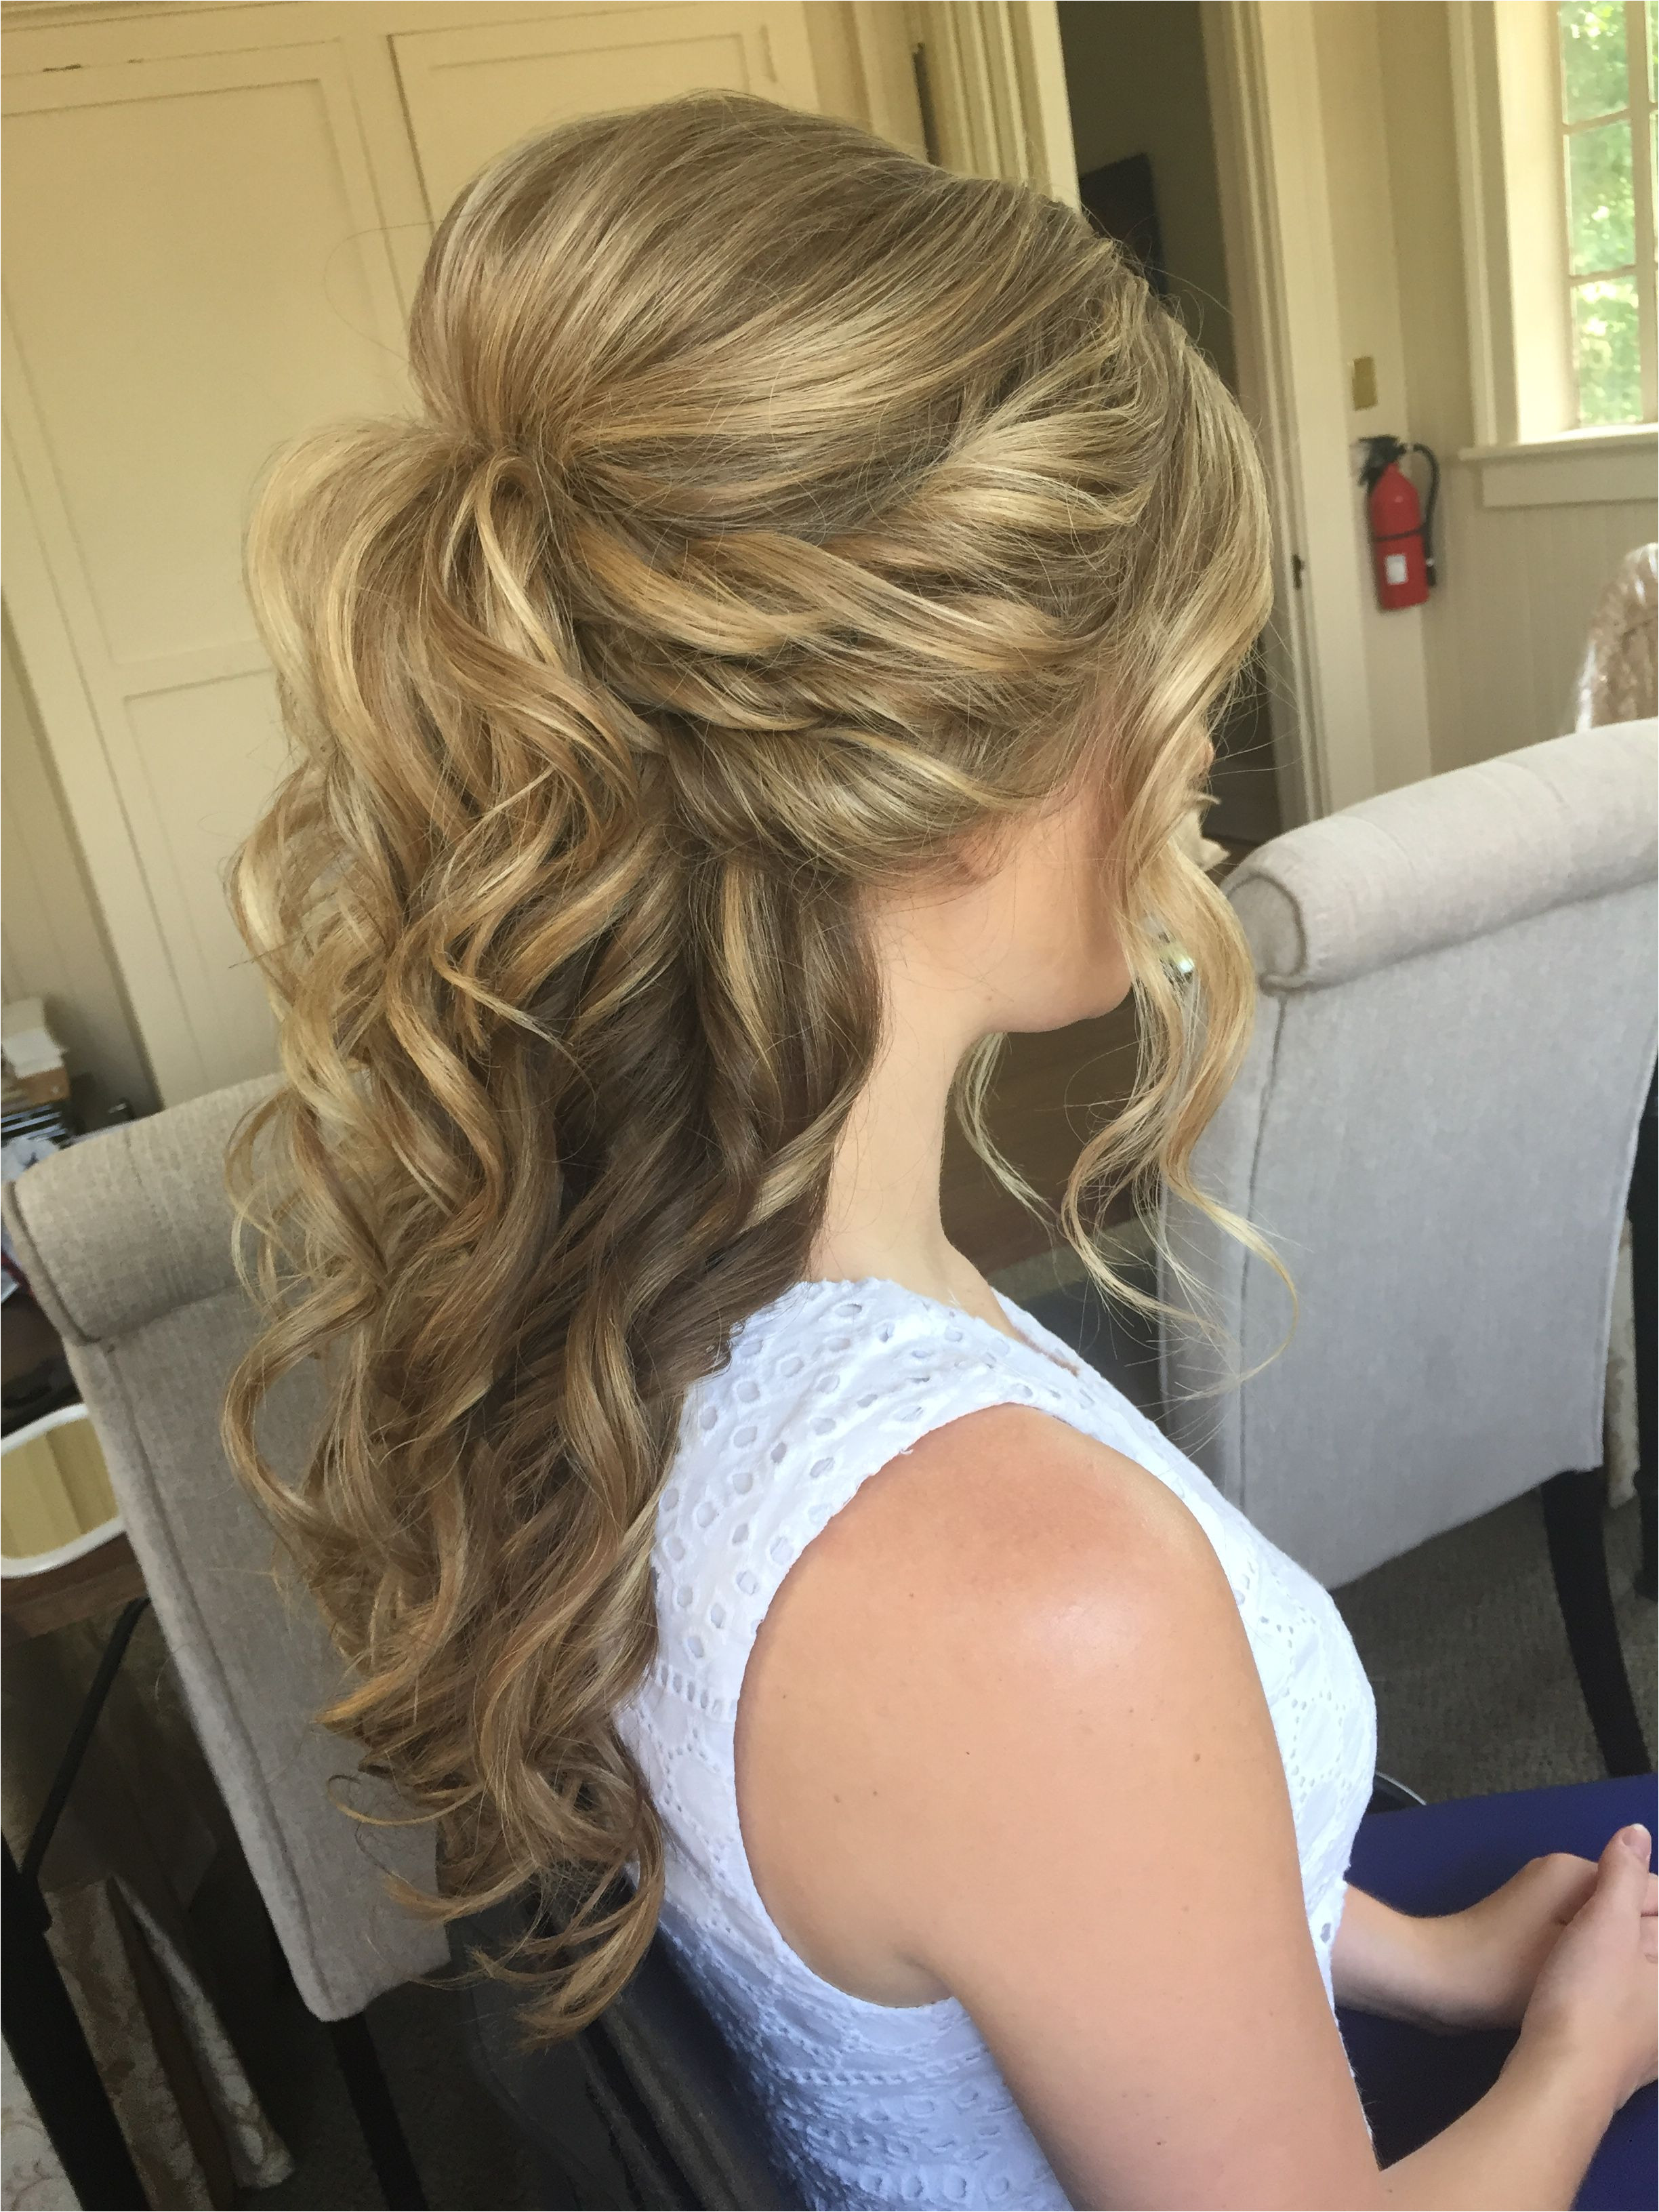 Prom Hairstyles Half Up with Braids 10 Wedding Hairstyles for Medium Length Hair Half Up Popular